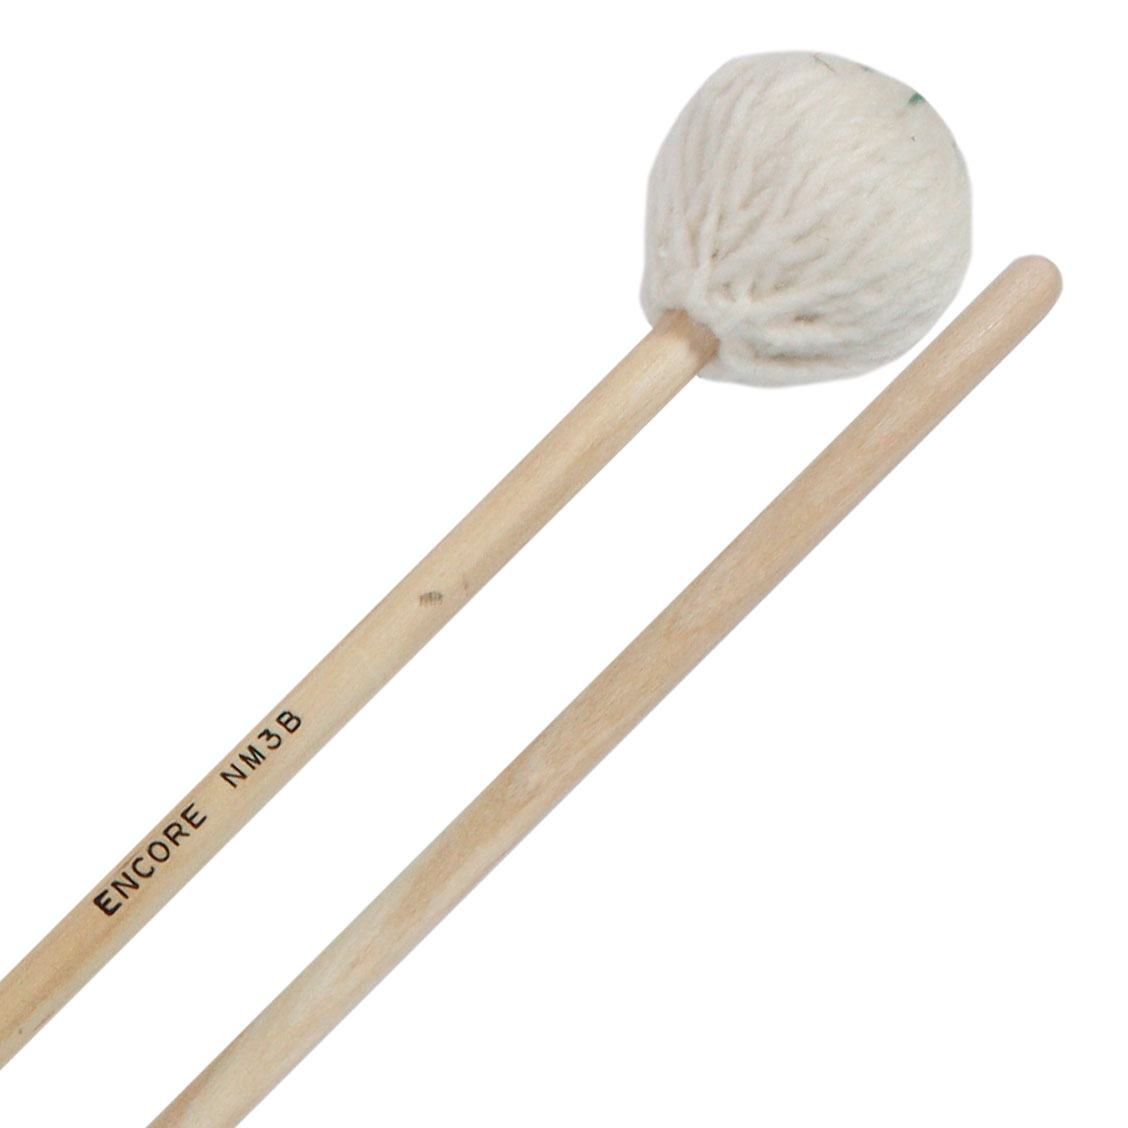 Encore Nanae Mimura Signature Medium Hard Marimba Mallets with Birch Shafts